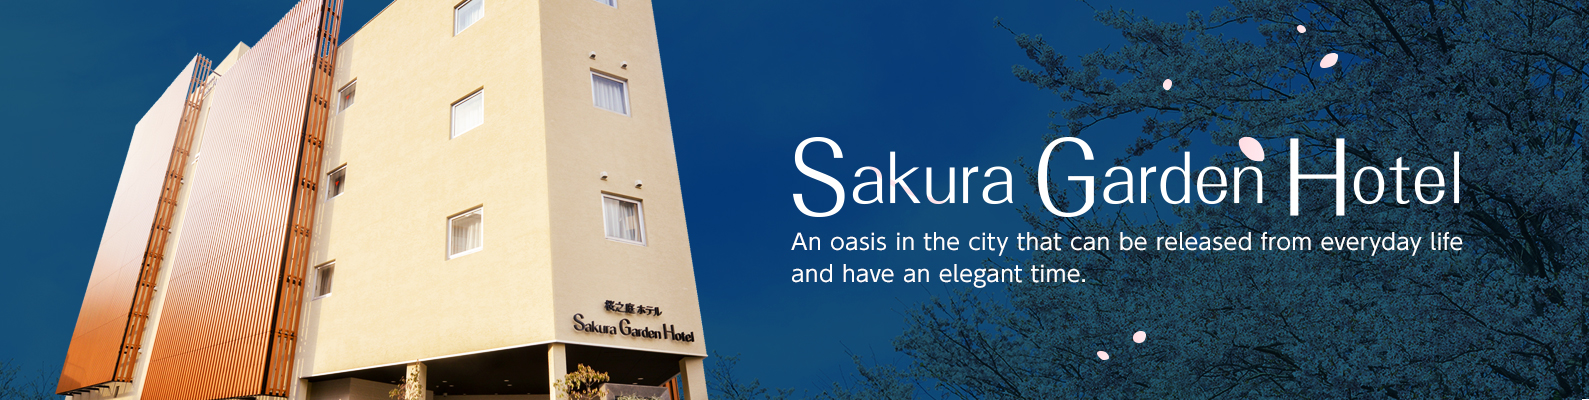 Sakura Garden Hotel Sakura Garden Hotel is an oasis of the city that is free from everyday life and can spend time